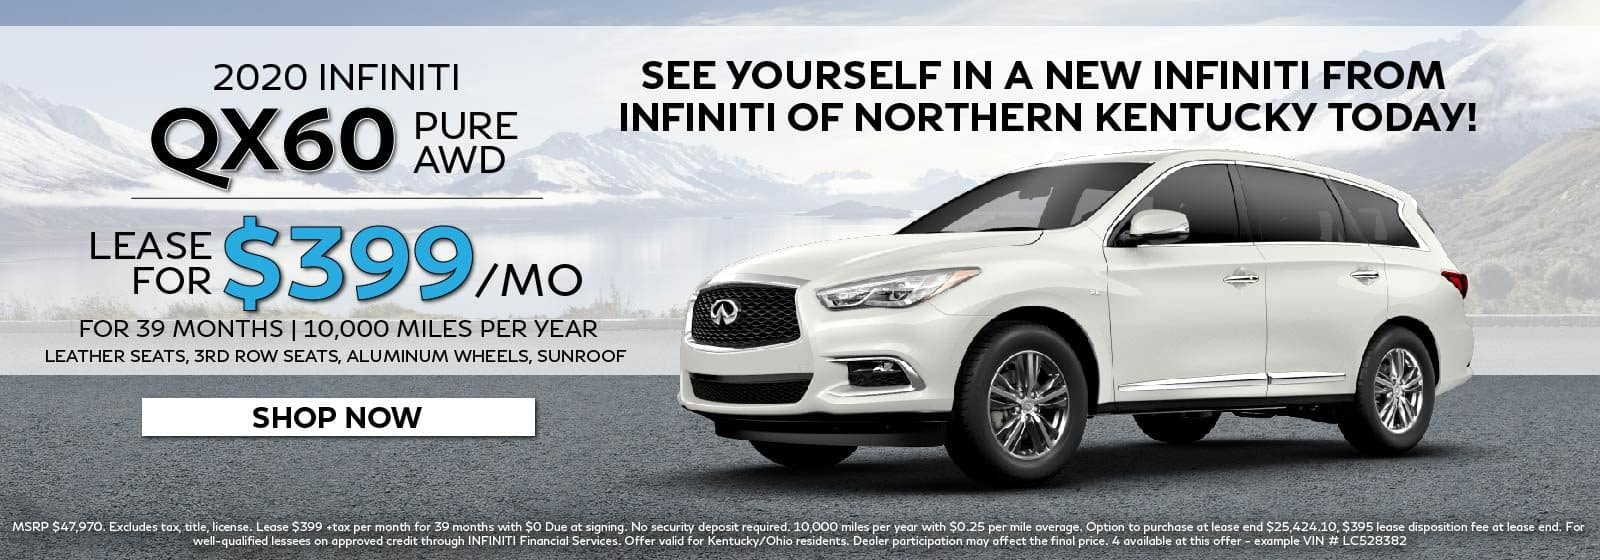 2020 QX60 lease offer. Lease for $399 per month for 39 months and 10,000 miles a year. MSRP $47,970. Restrictions may apply. See retailer for complete details. Offer ends 3/31/2020.